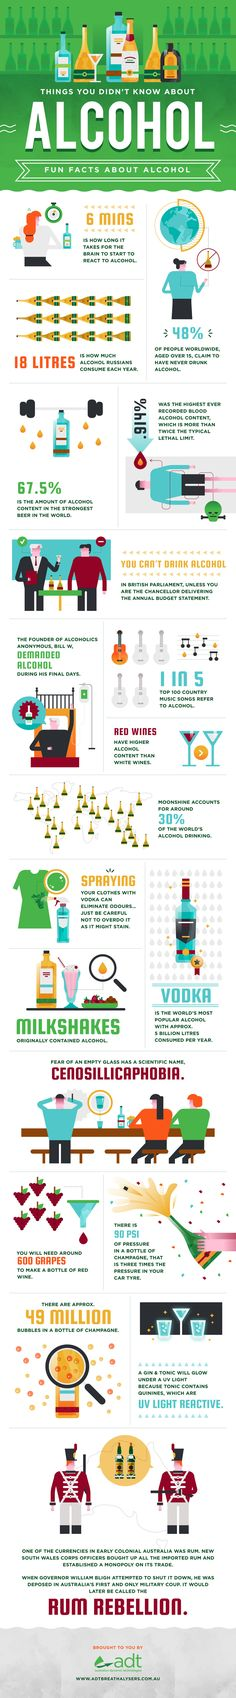 Things You Didn't Know About Alcohol [Infographic]